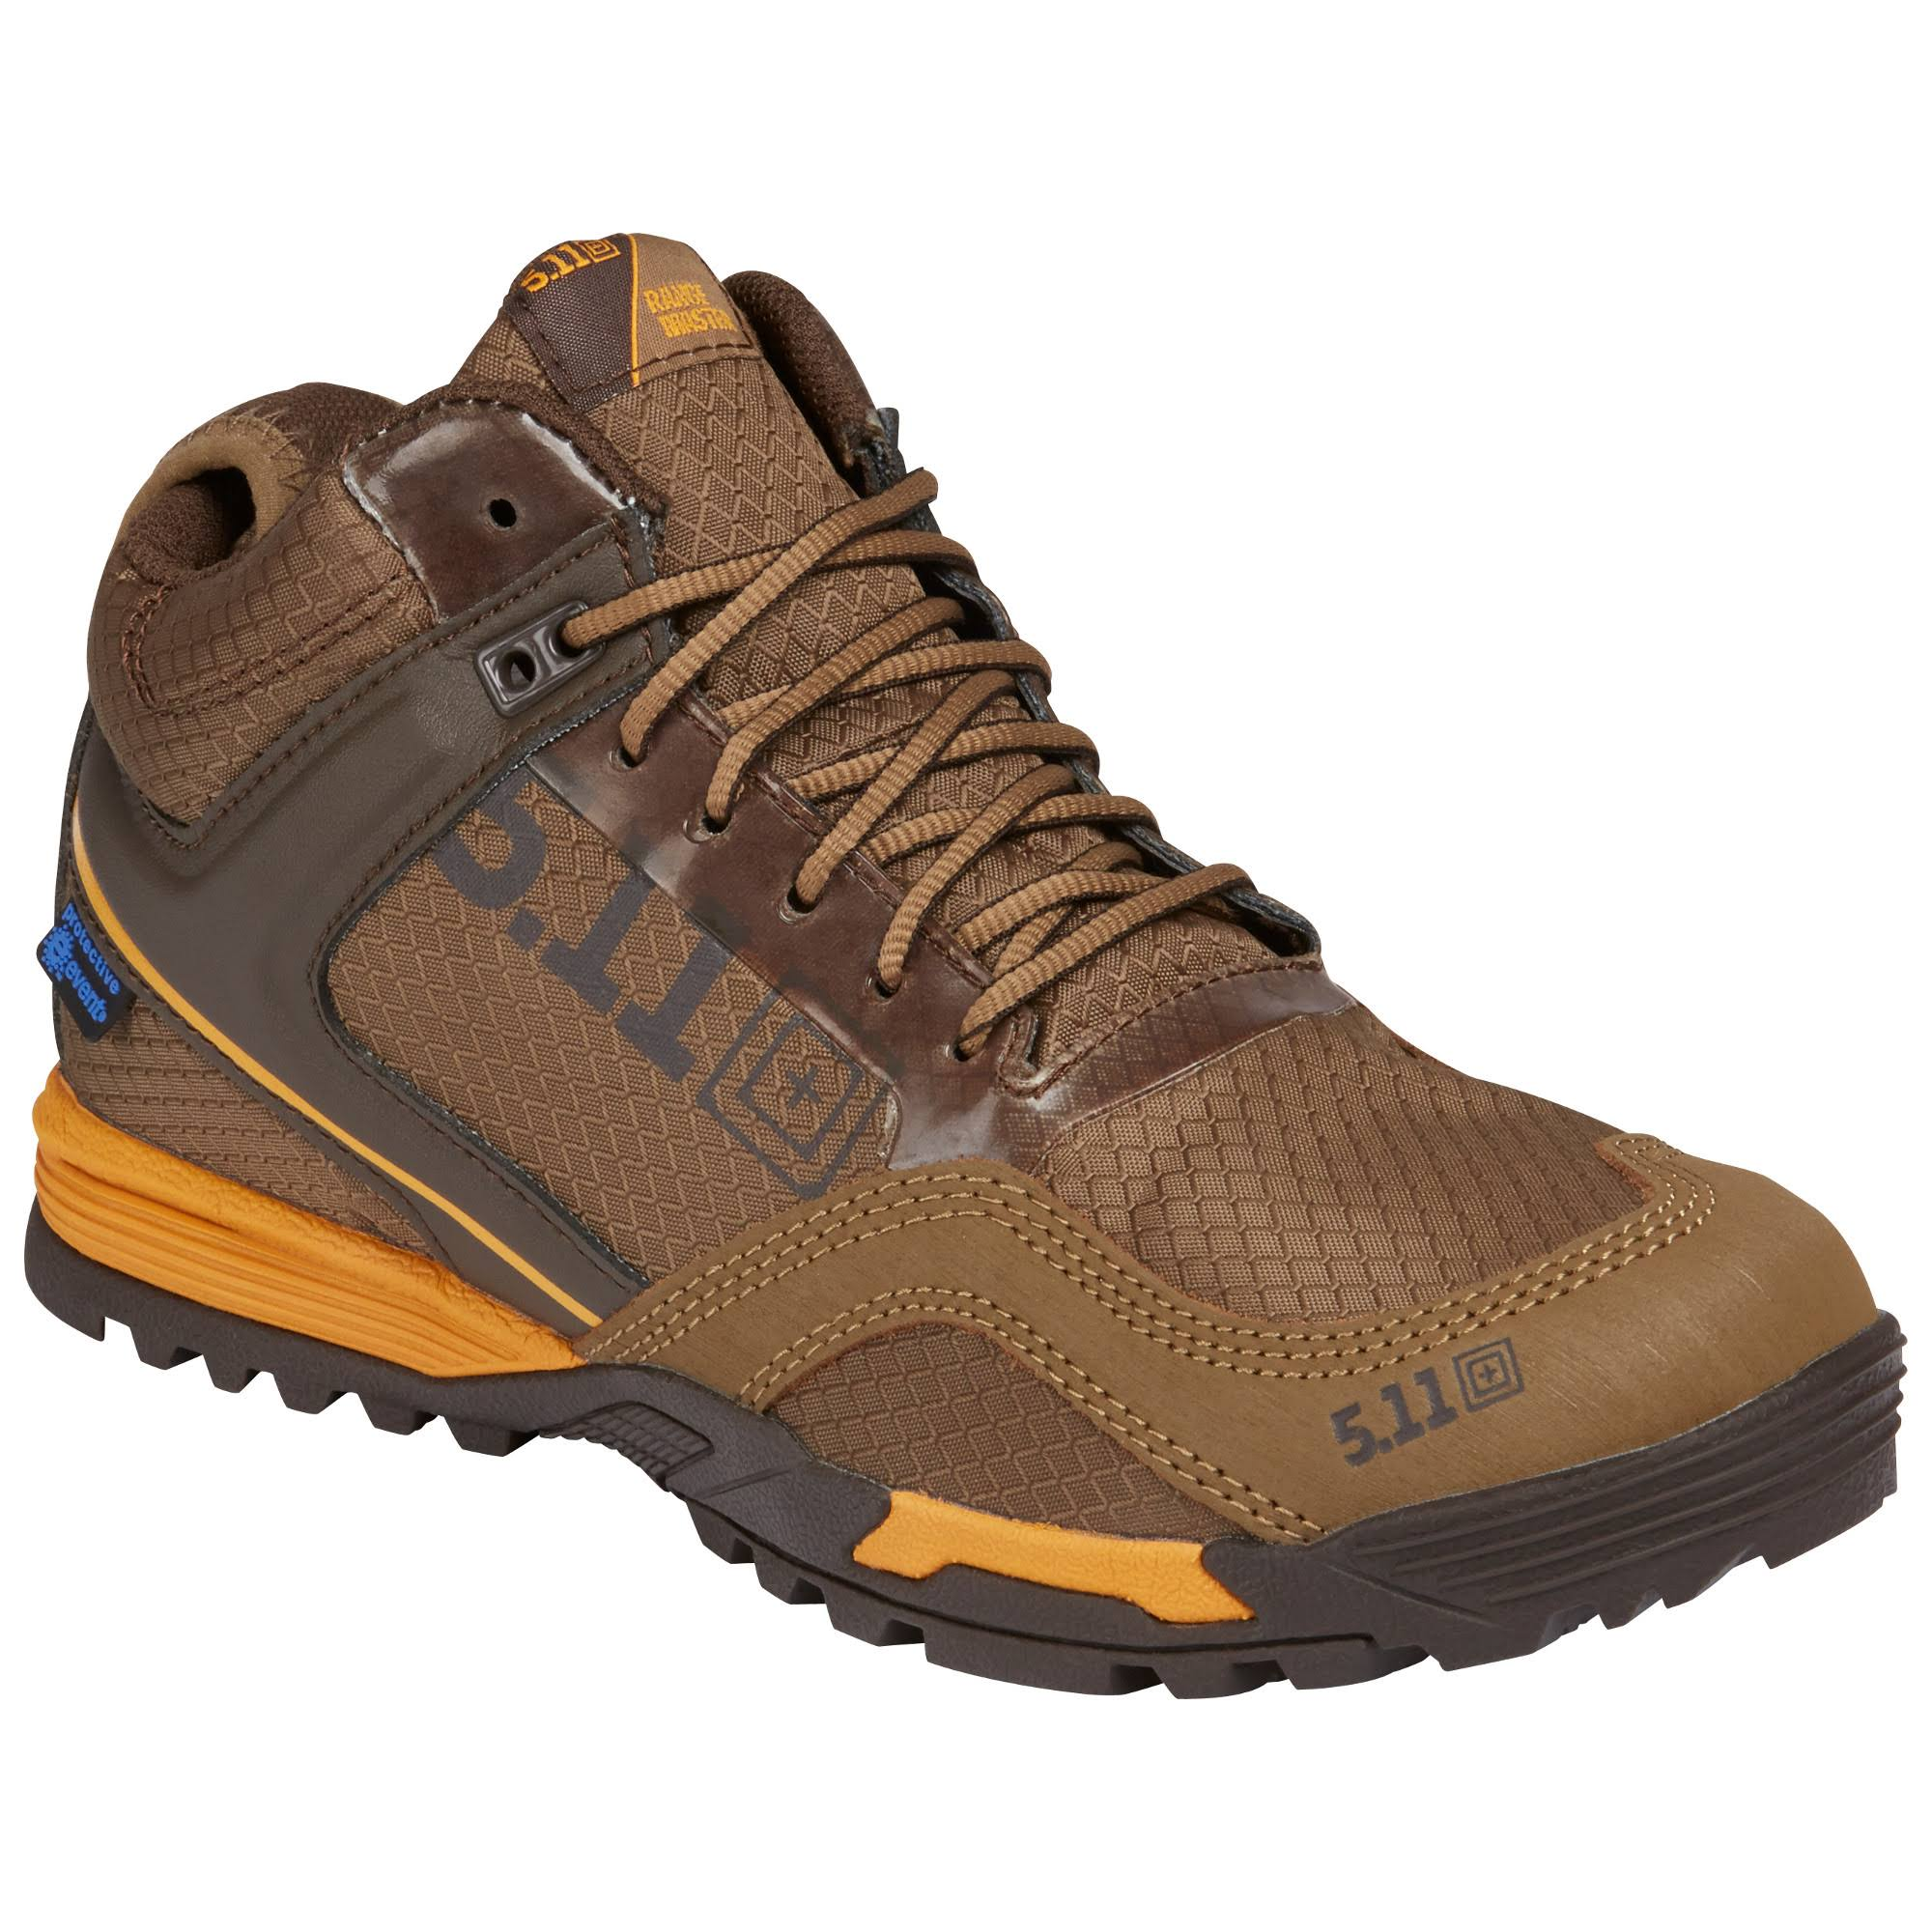 5.11 Tactical Range Master Waterproof Boot